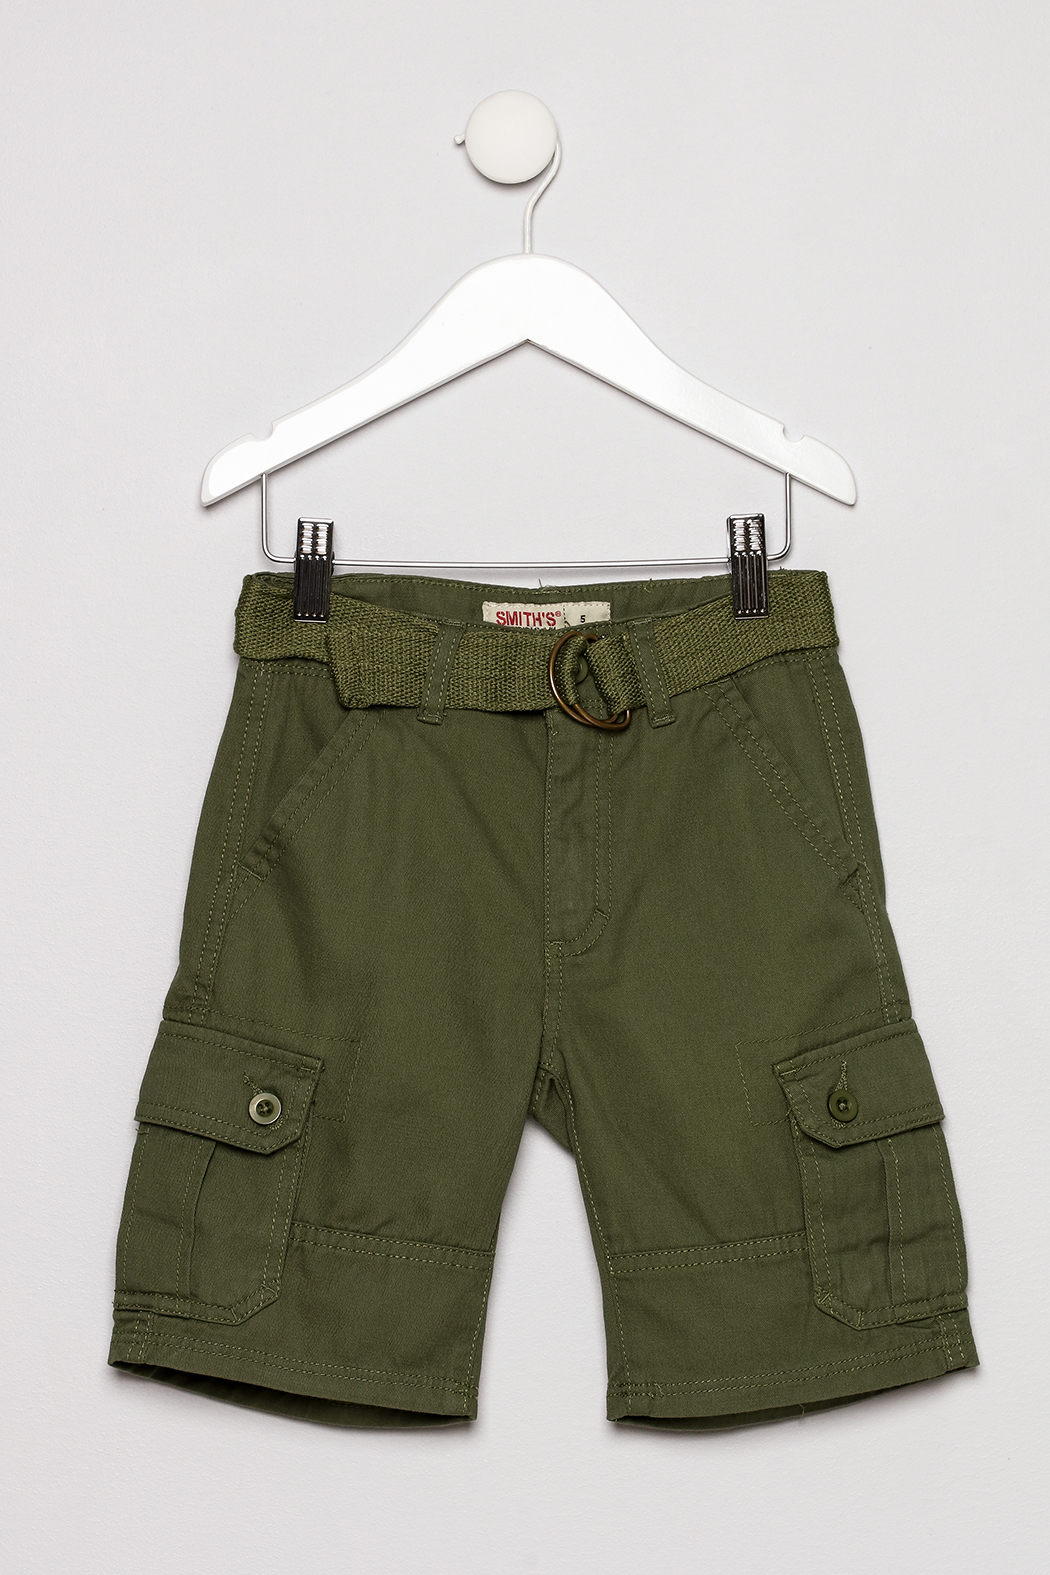 Smiths American Olive Cargo Short - Main Image